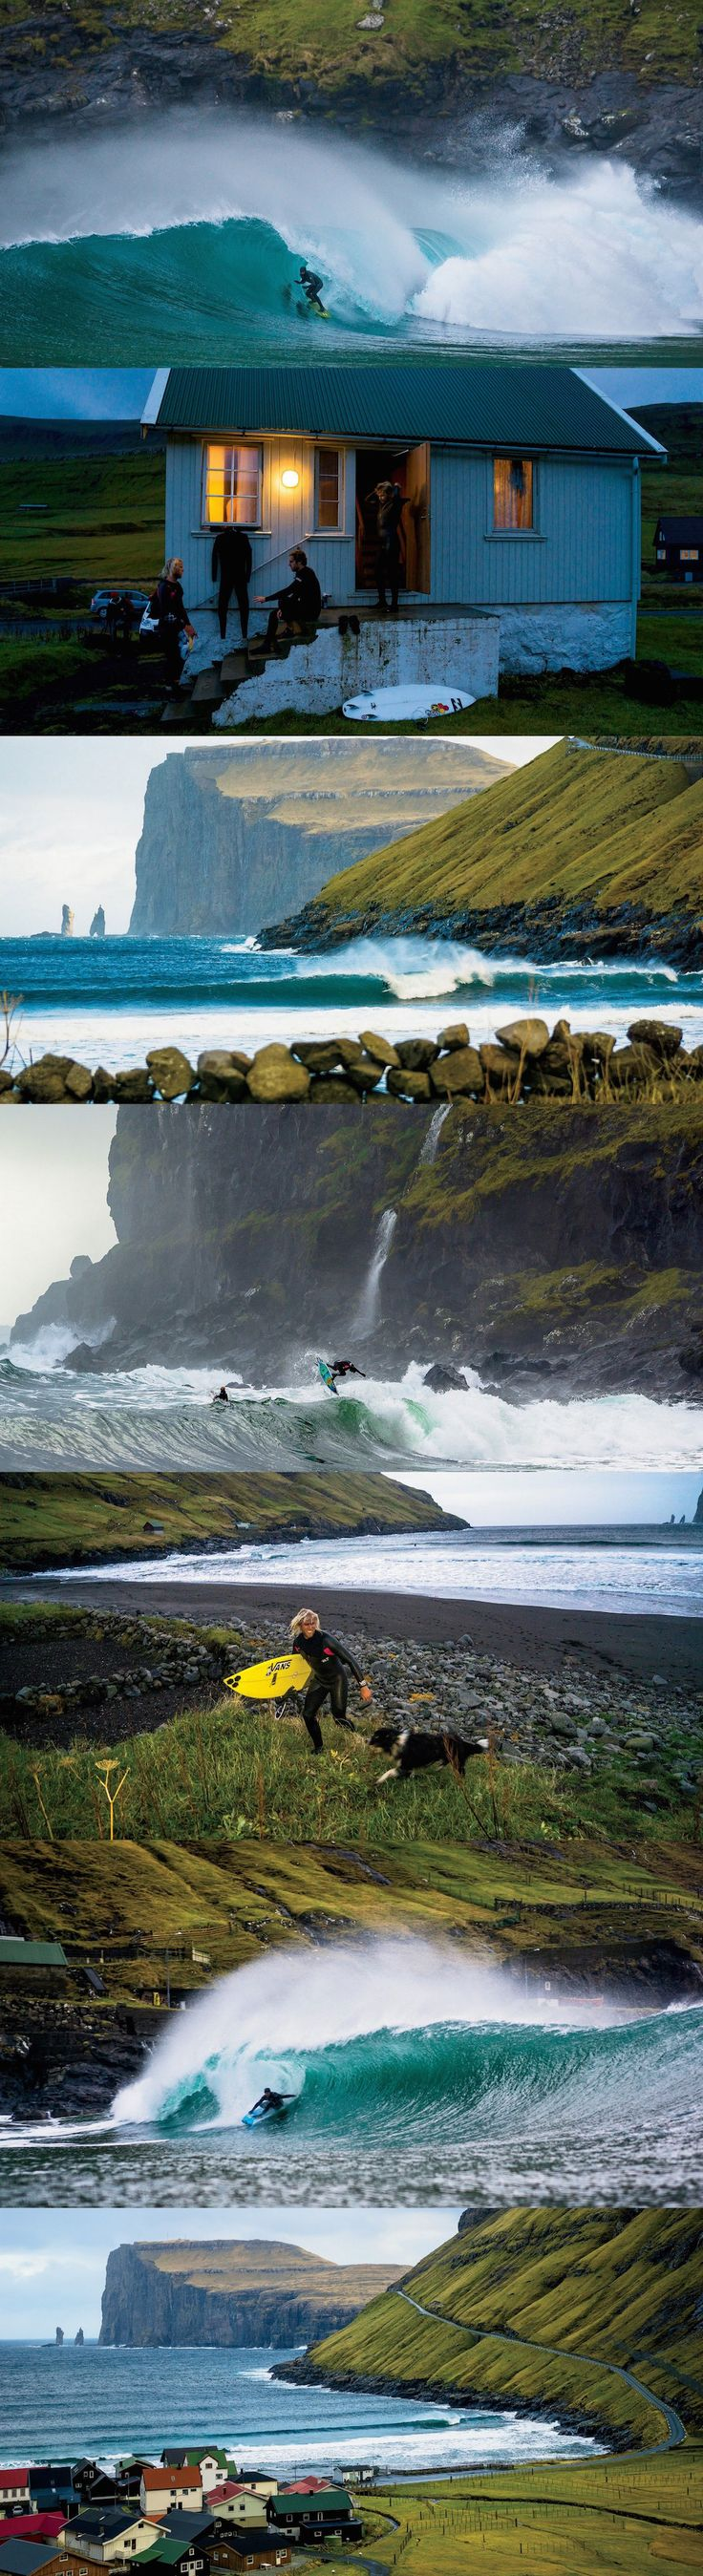 The Fjord - SURFER Magazine #TheFjord #SURFERMagazine #surfing #サーフィン